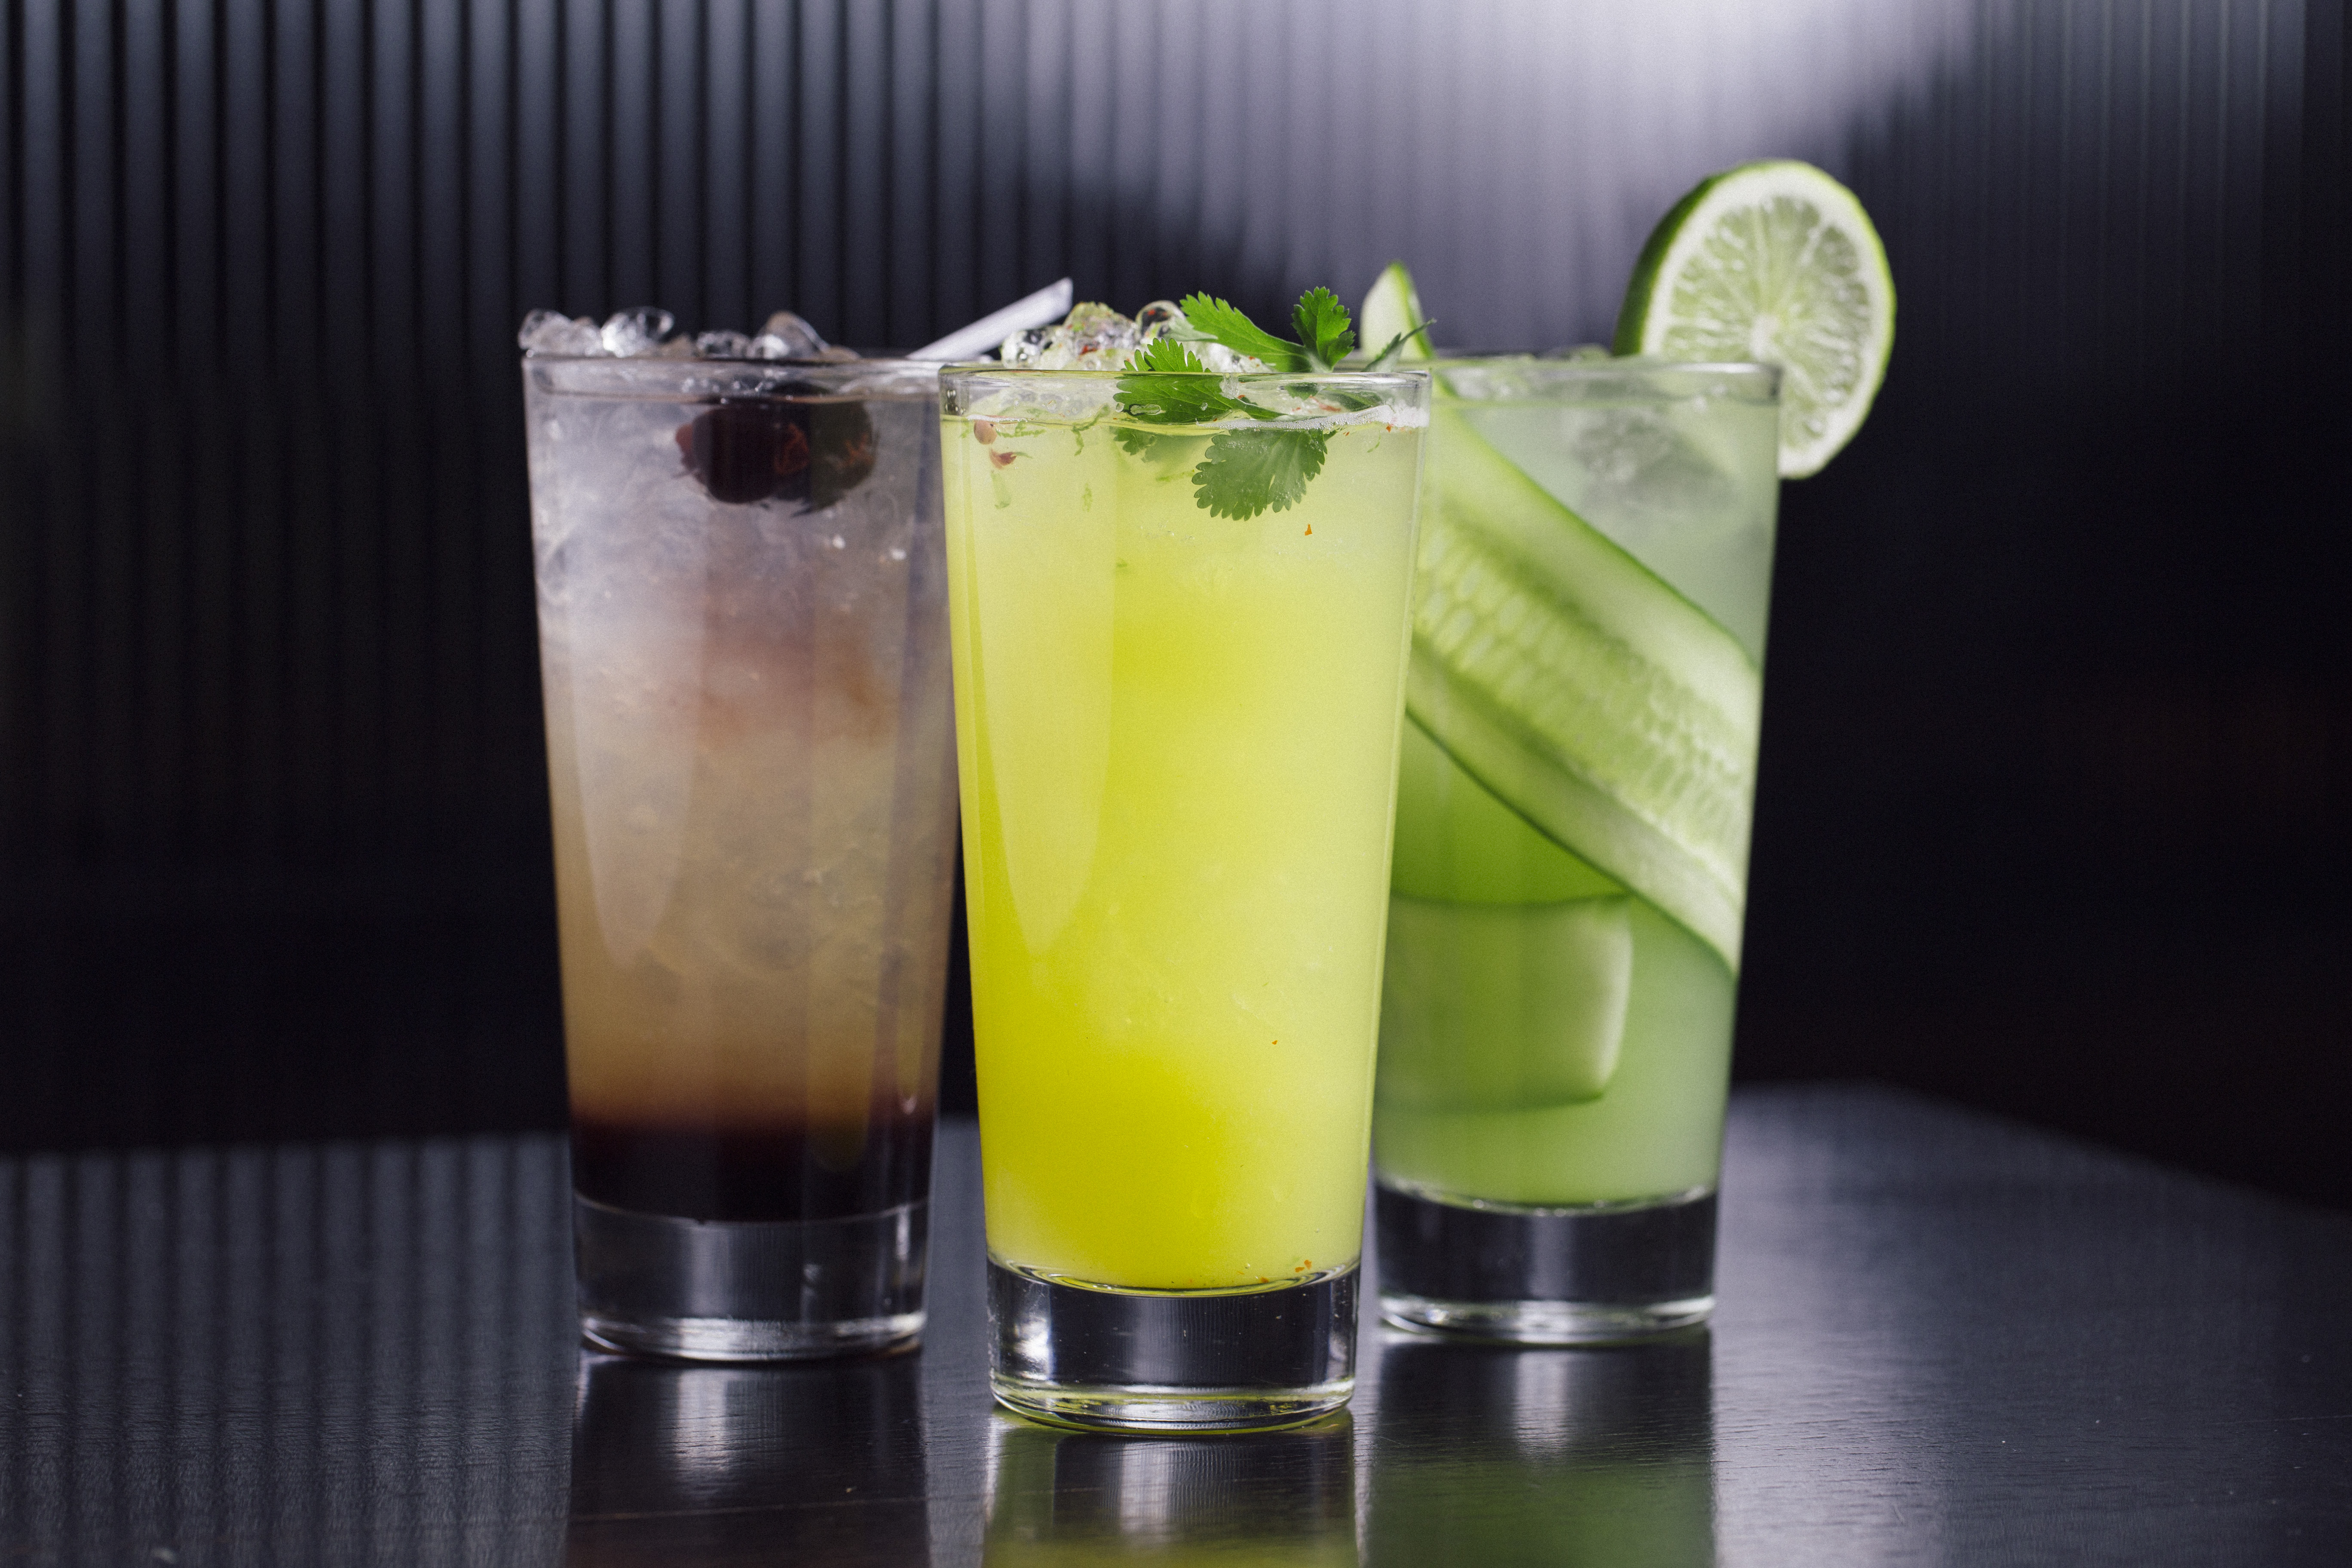 Three colorful mocktails from RPM Italian